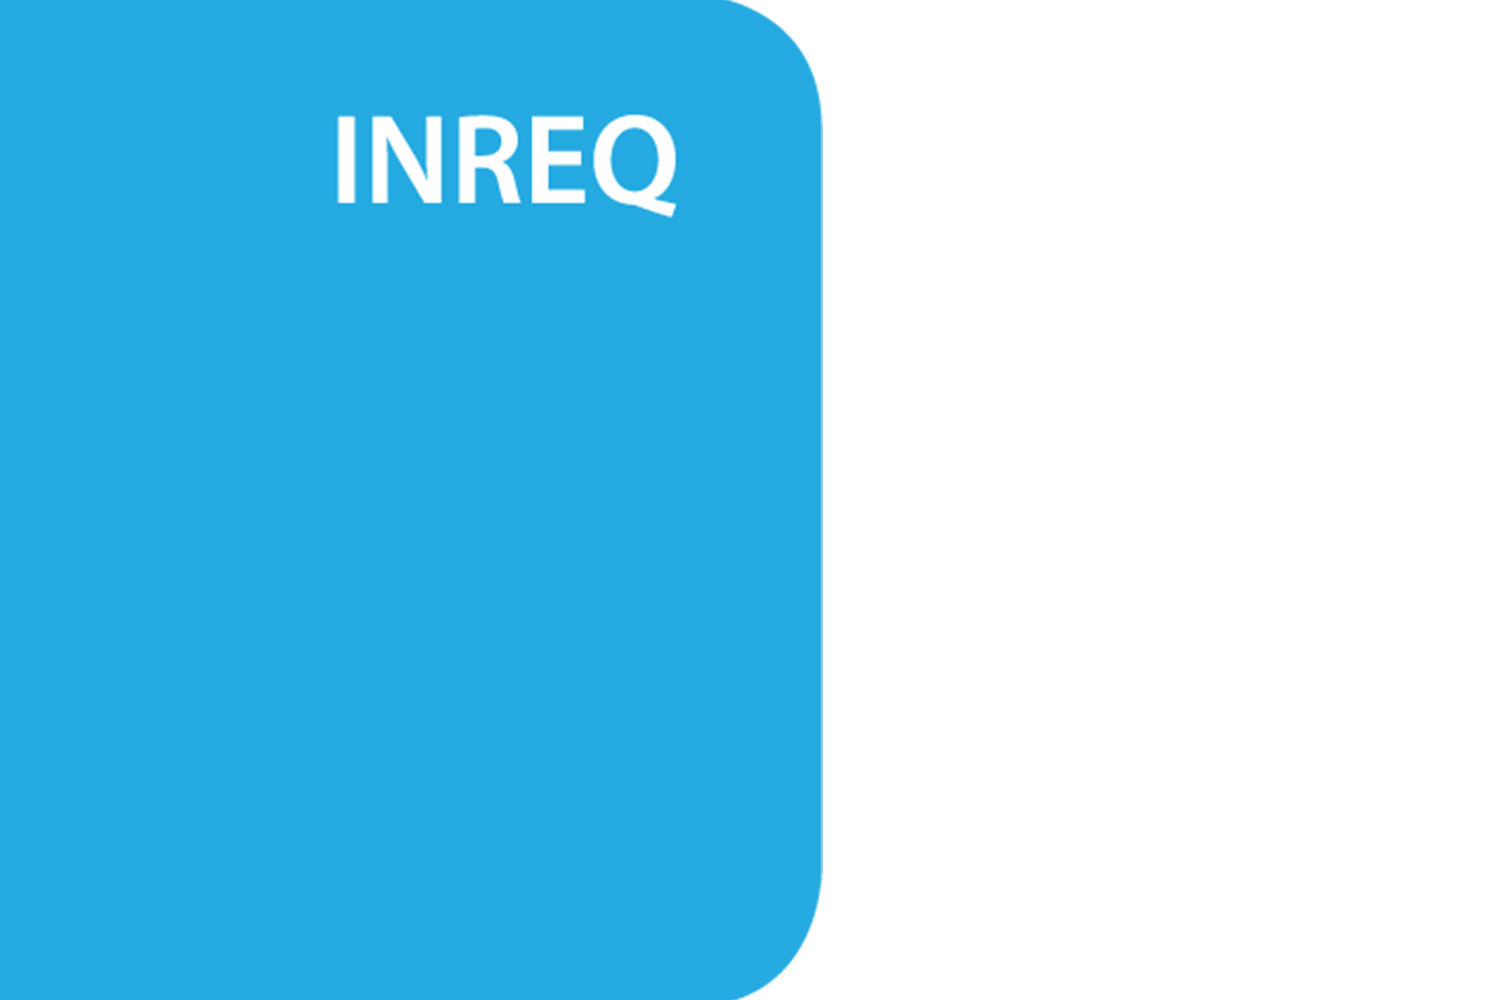 Inreq, corporate identity image